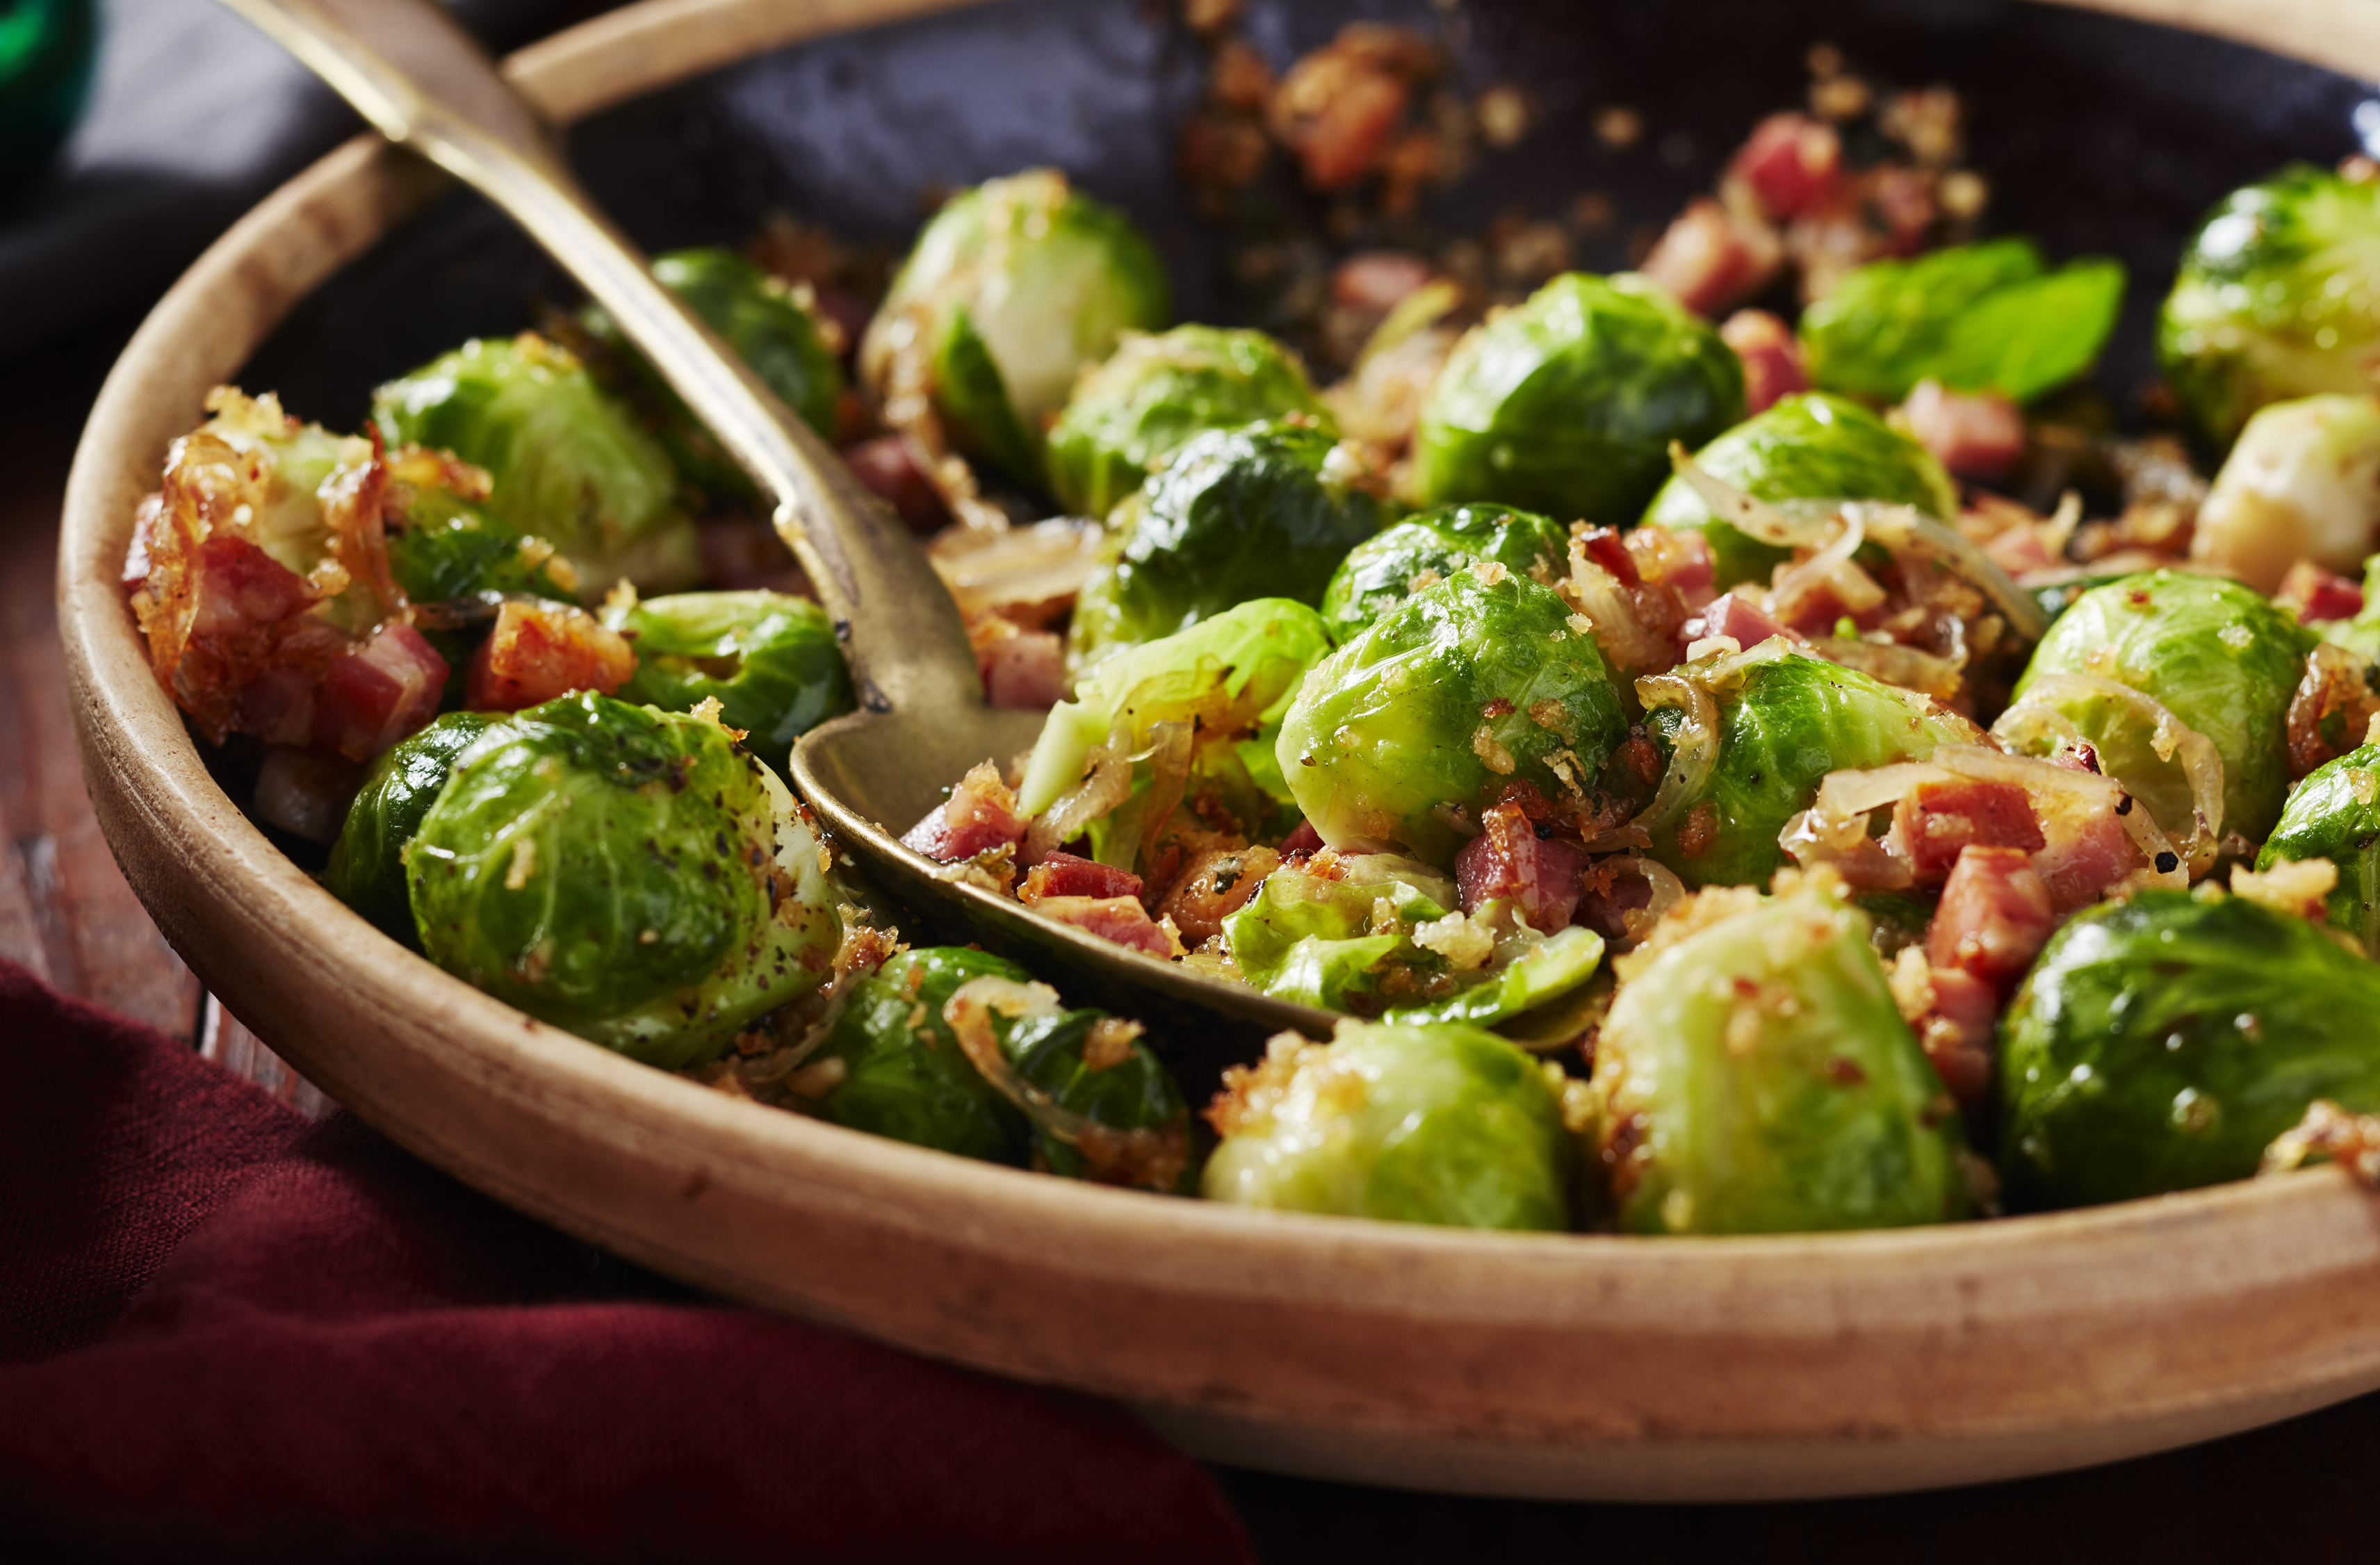 A bowl cradles a spoon and seasoned Brussels sprouts with diced pancetta